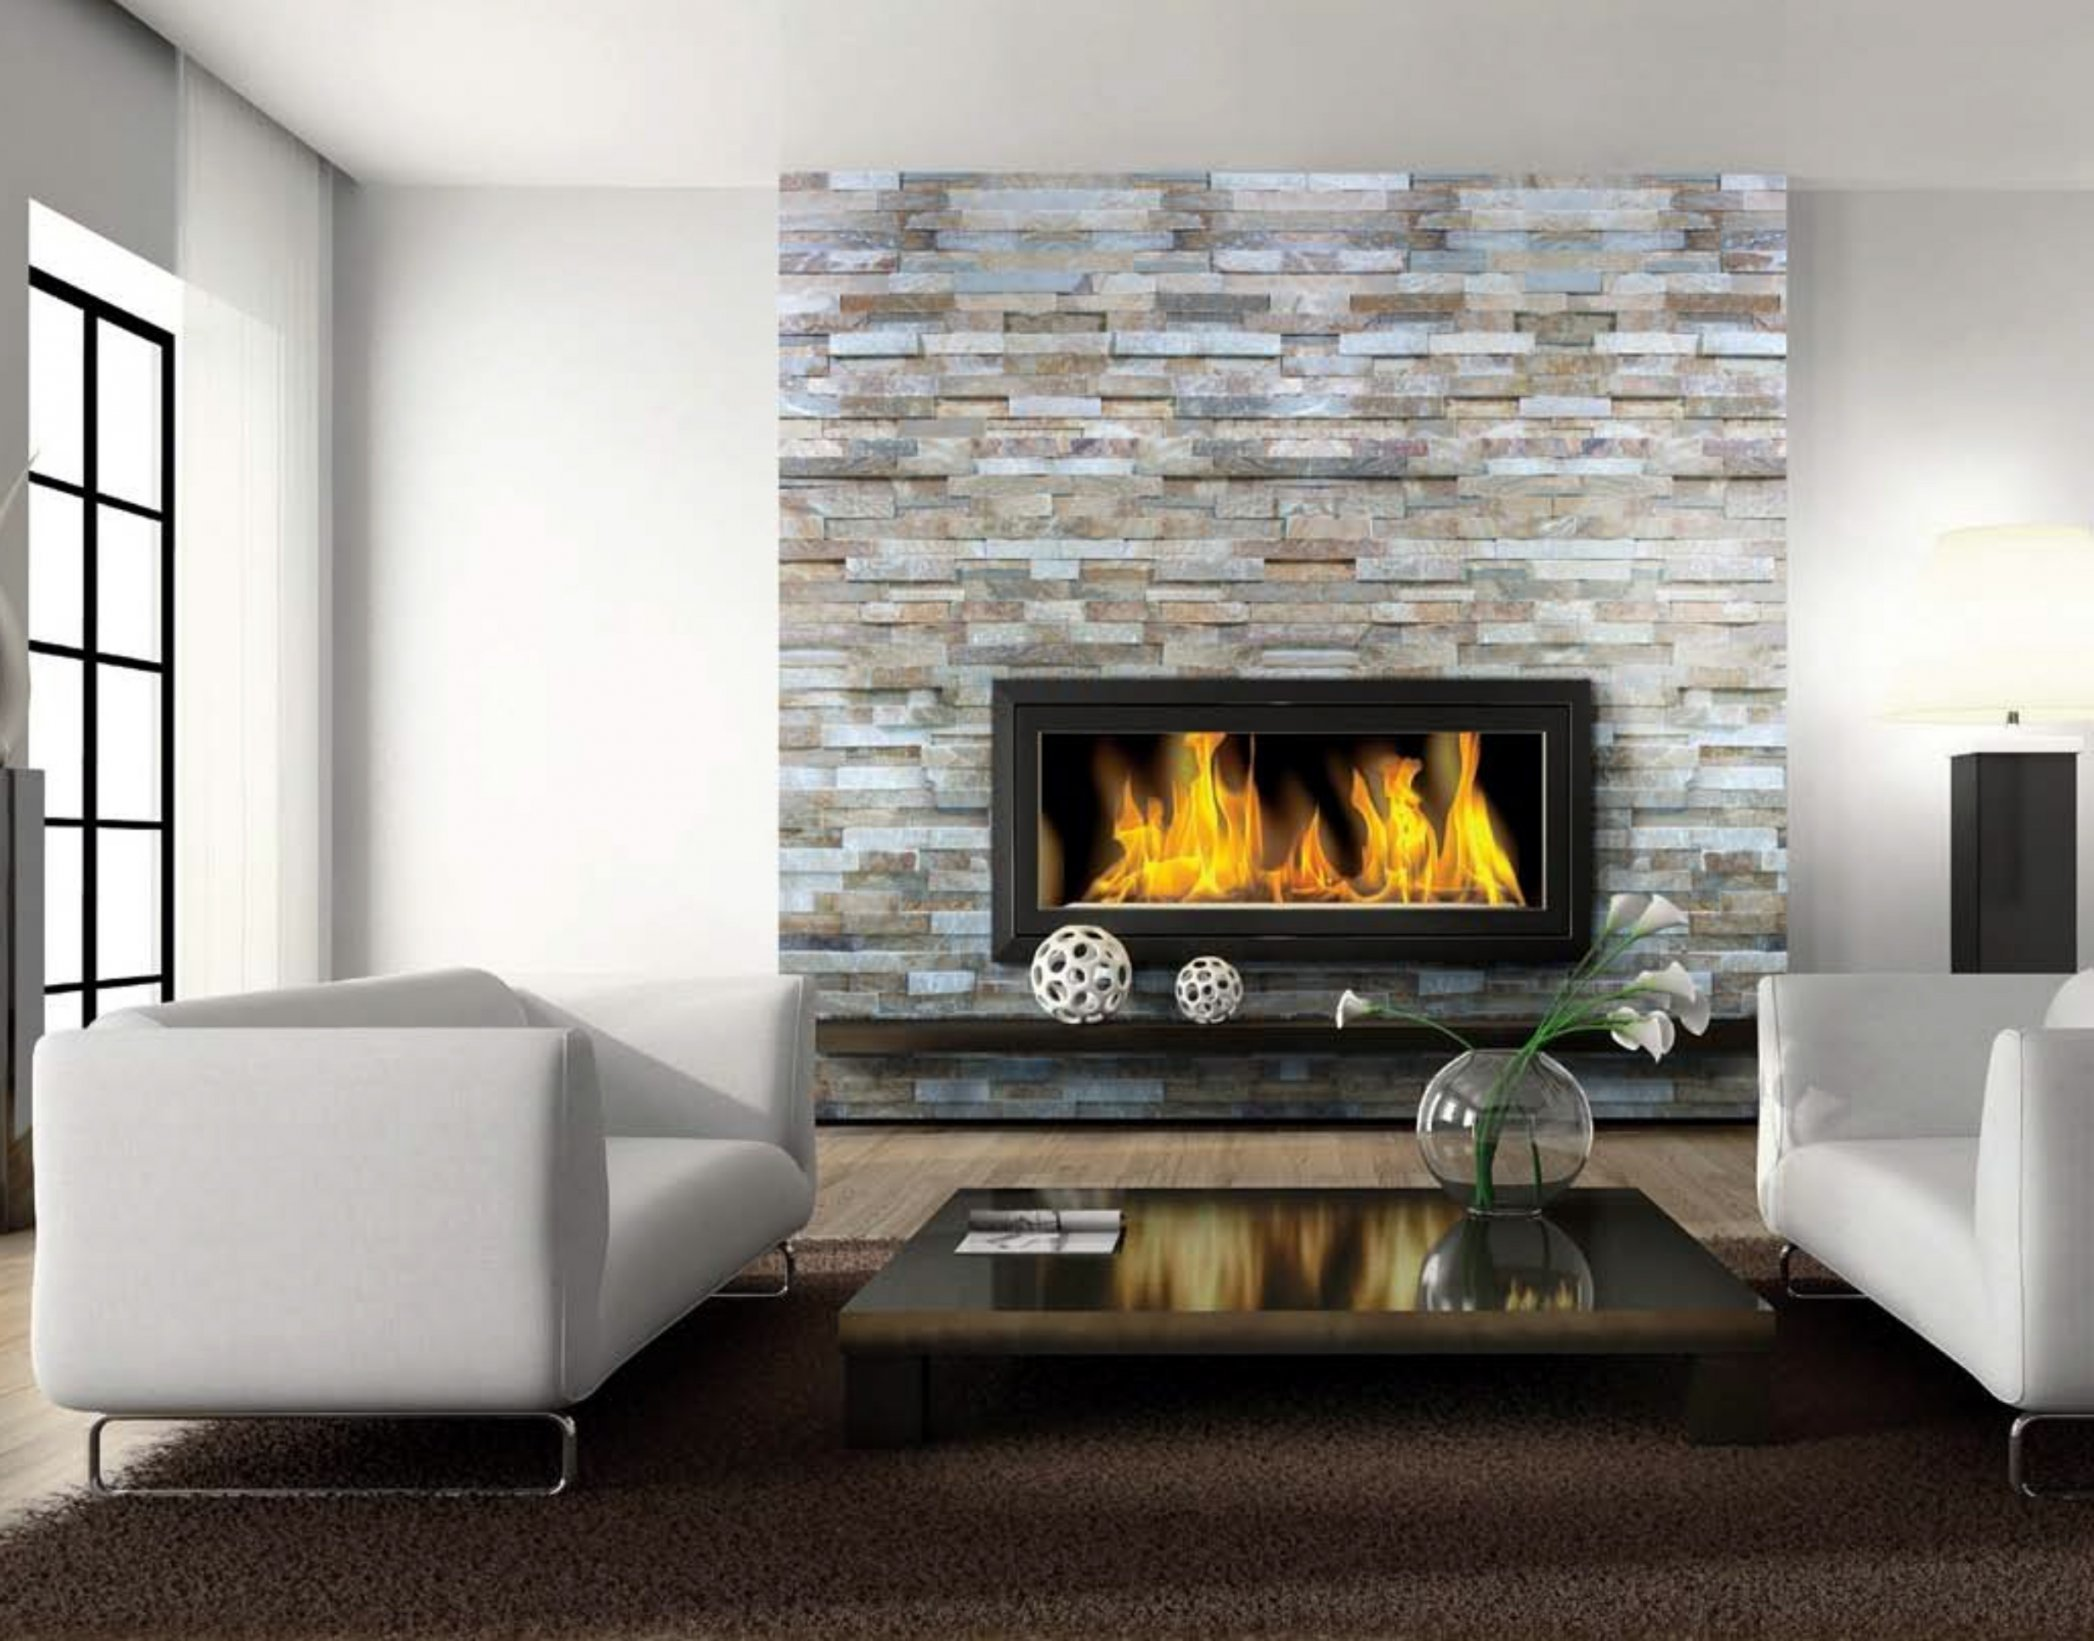 10 Unique Fireplace Design Ideas With Tile fireplace wall tile ideas tile designs 2020